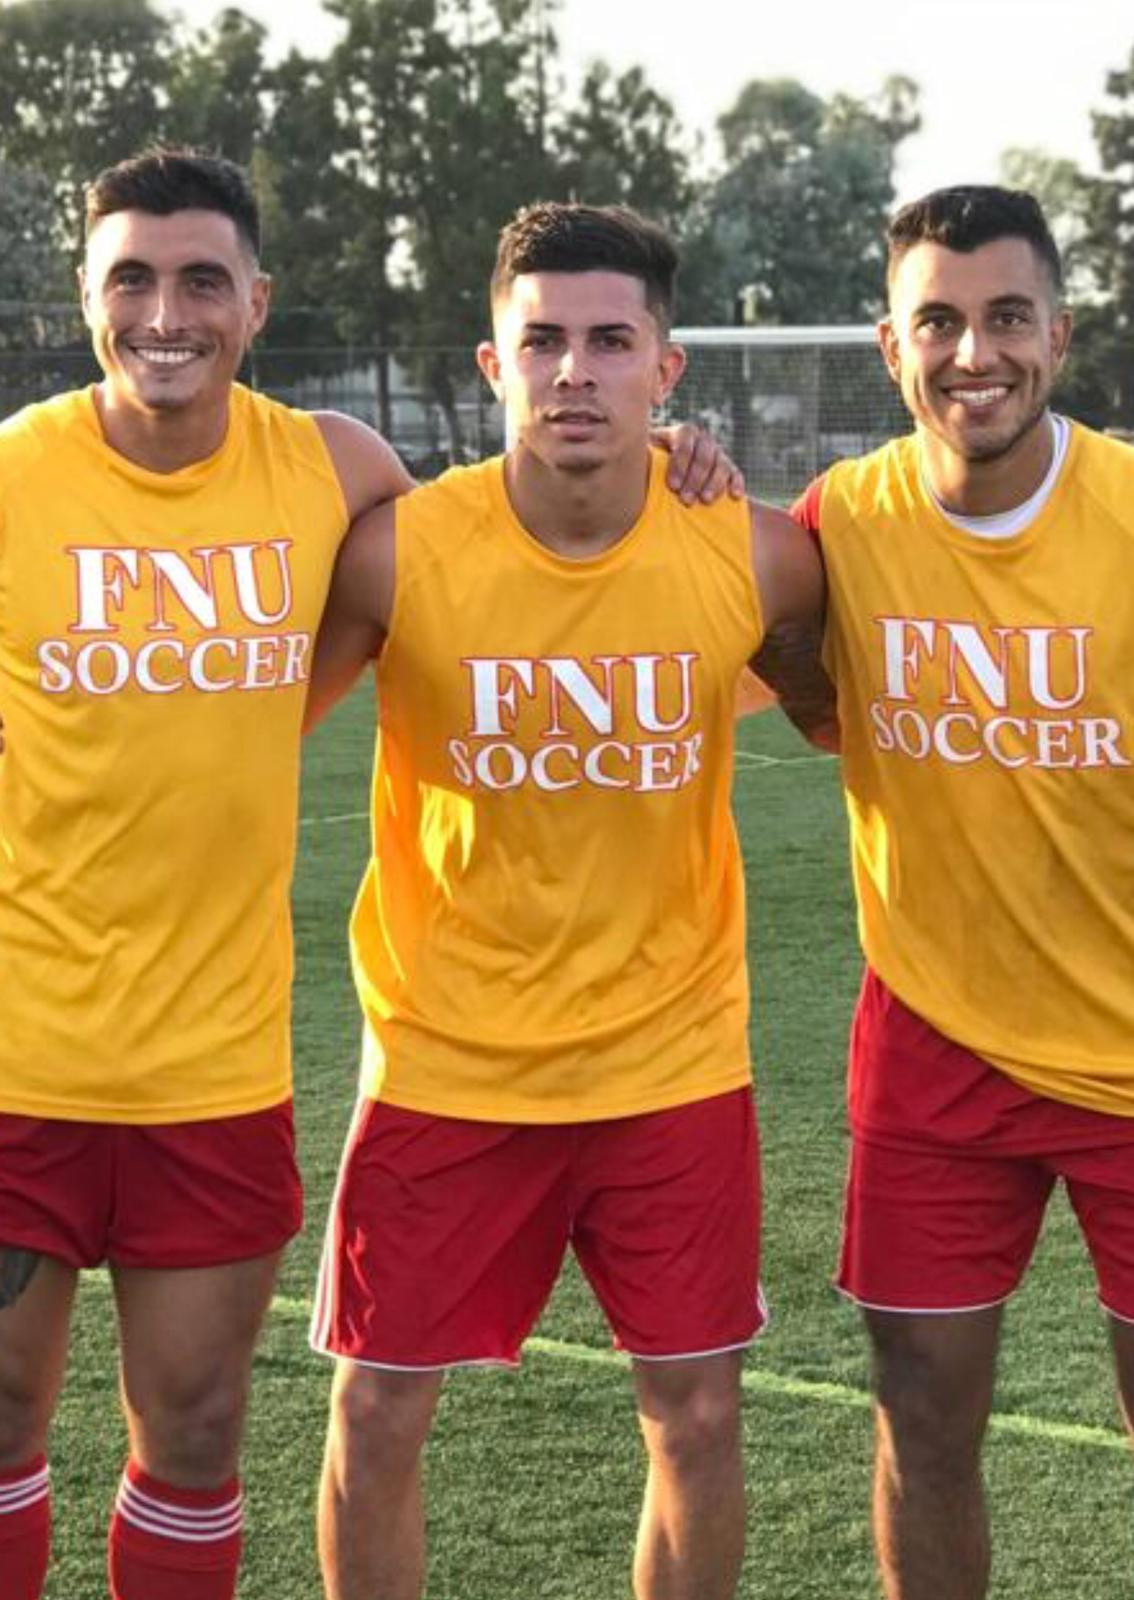 FNU Players